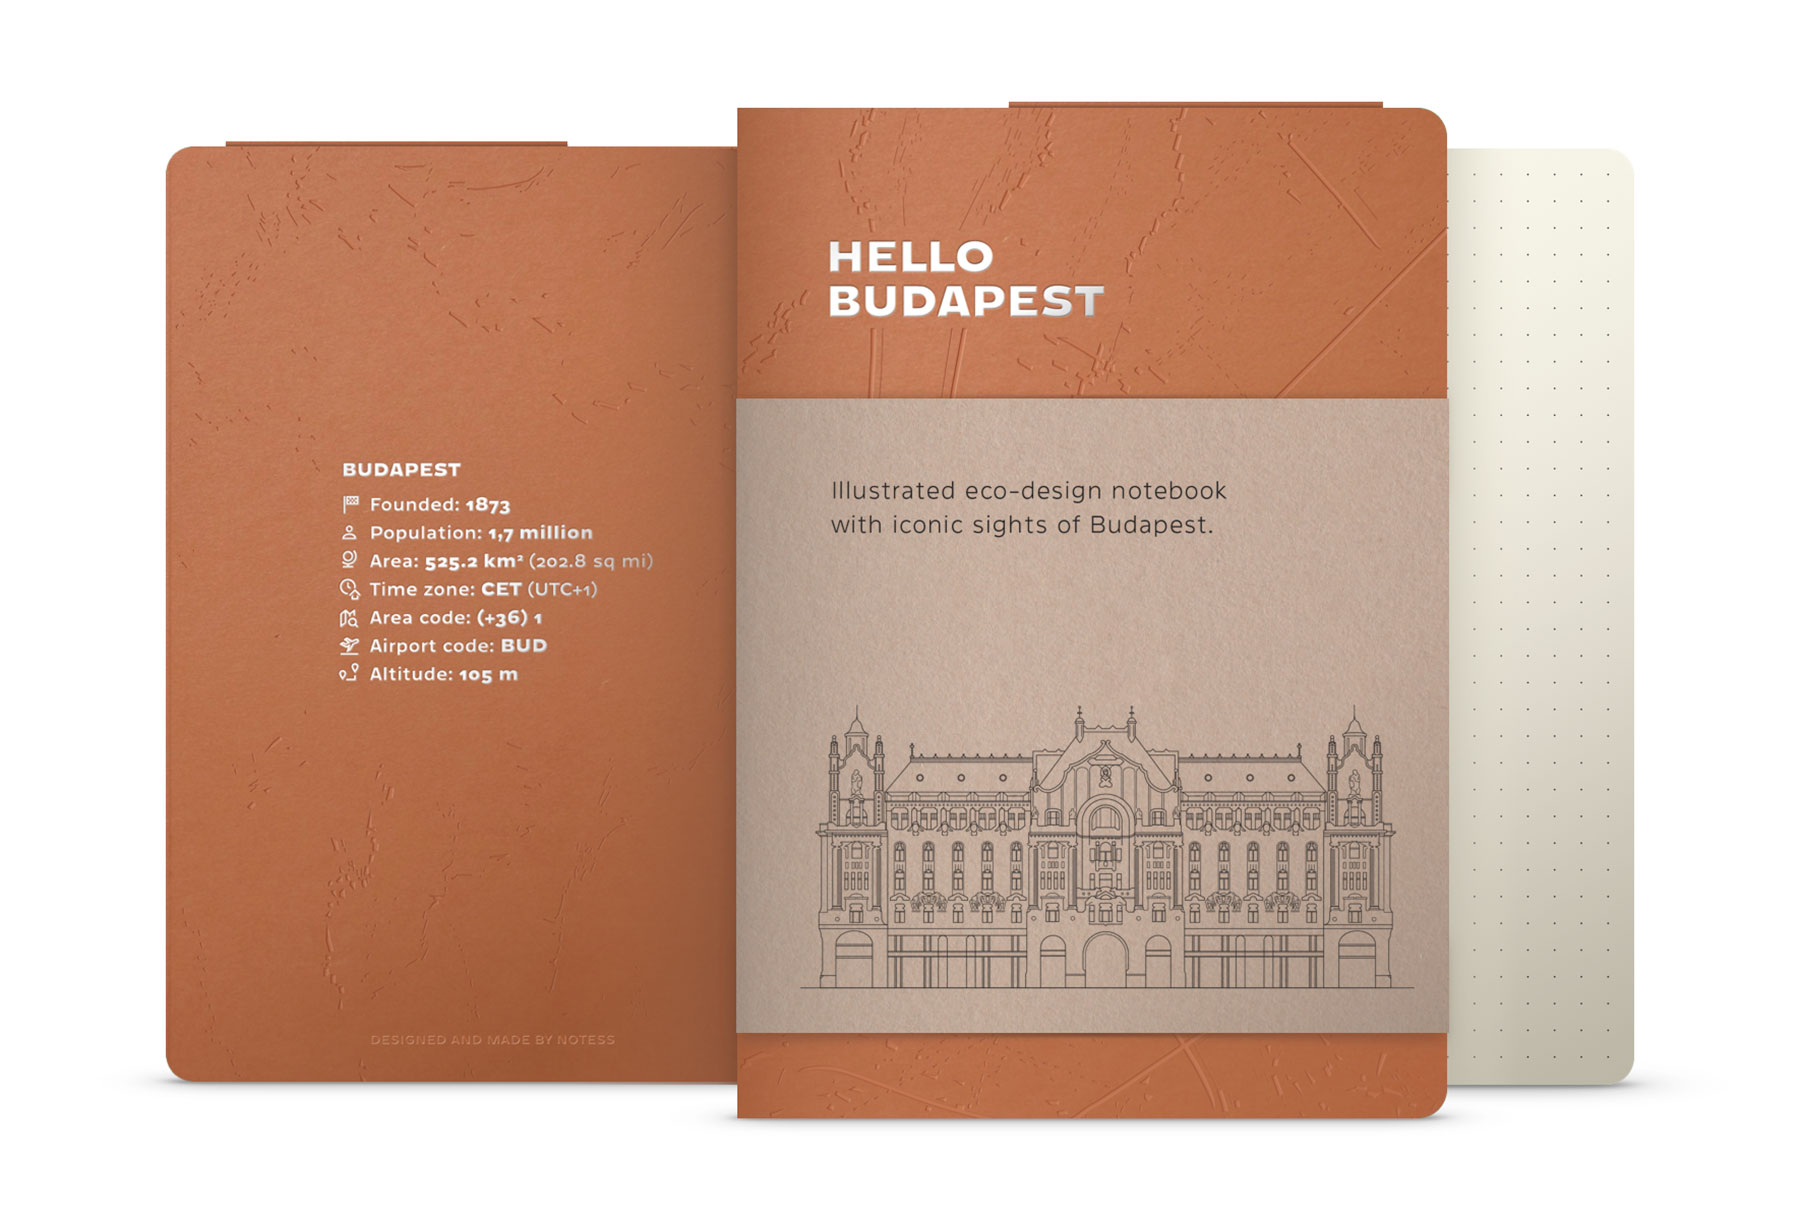 Hello-Budapest-Notebook-Cooper-Orange-Product-02.jpg